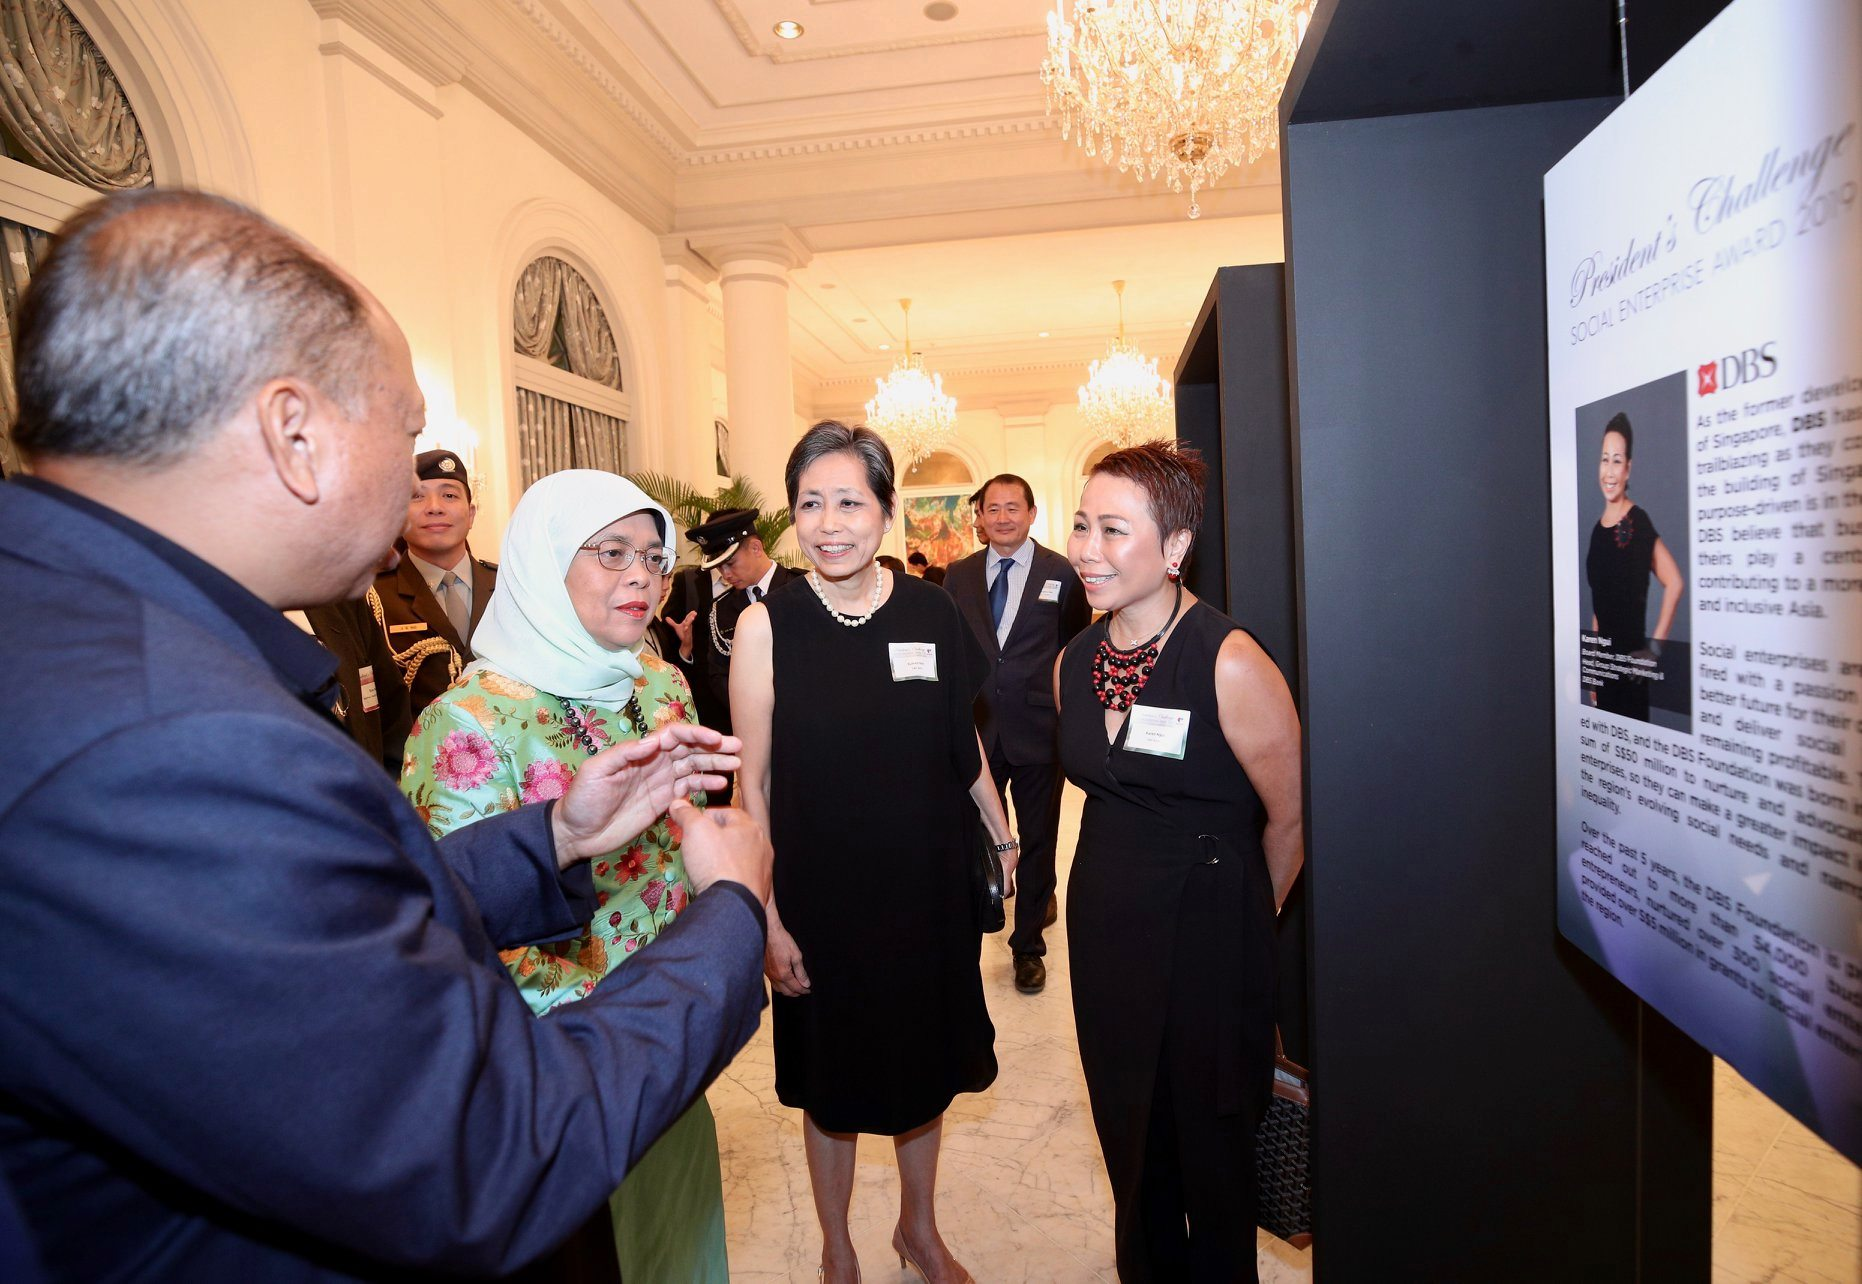 DBS shares with President Halimah how they had helped to nurture over 300 social enterprises through awareness building activities, funding support, capacity building initiatives, and access to lower banking fees. Photo courtesy: MCI, Chwee